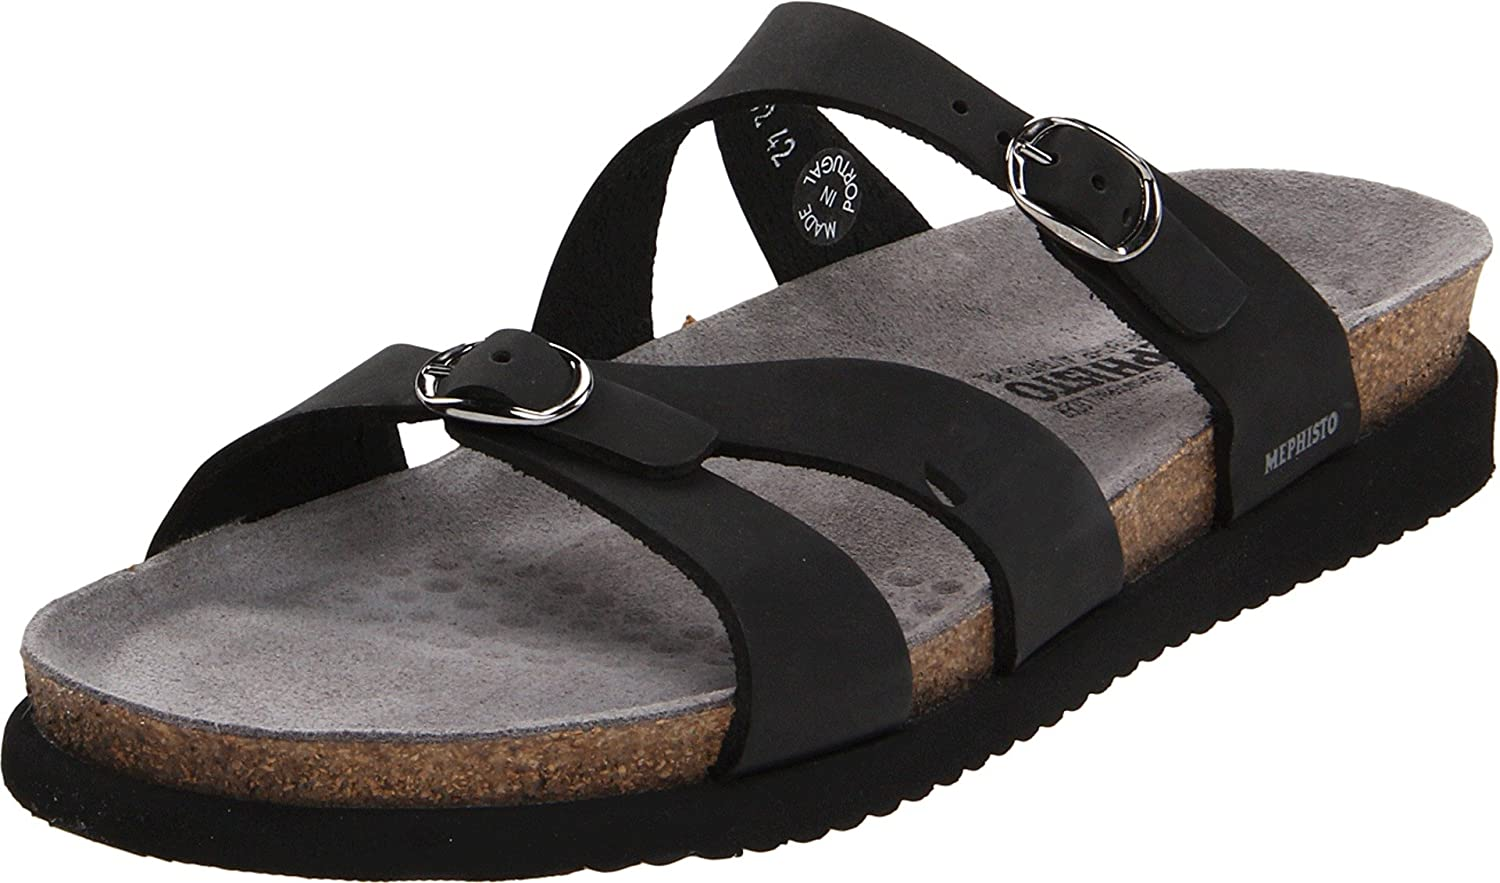 Black Mephisto Women's Hannel Sandals